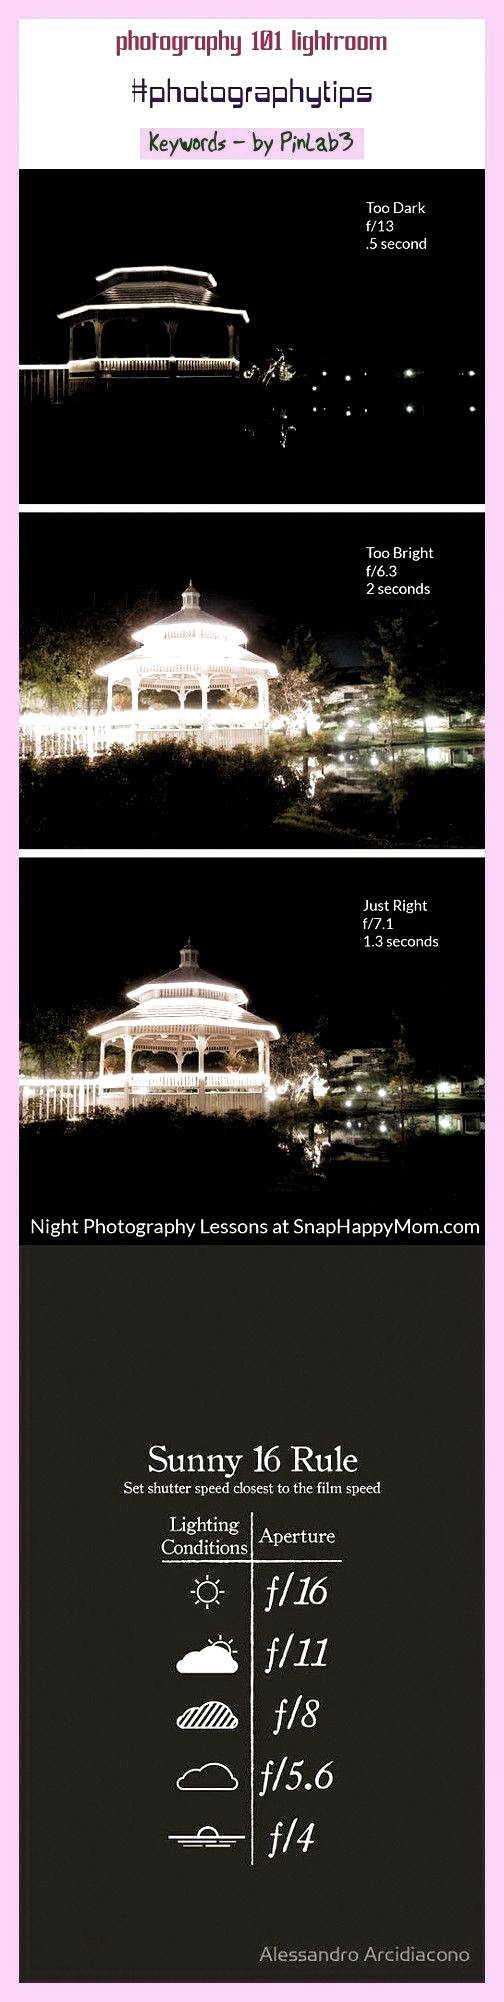 Photography 101 lightroom #photography #lightroom #fotografie #lichtraum #photographie Fotografie 101 Lichtraum ,  photographie 101 lightroom ,  fotografía 101 lightroom ,  photography 101 iphone, photography 101 canon, photography 101 nikon, photography 101 samsung, photography 101 learning, photography 101 cheat sheets, photography 101 tutorials, photography 101 photo editing, photography 101 sony, photography 101 poses, photography 101